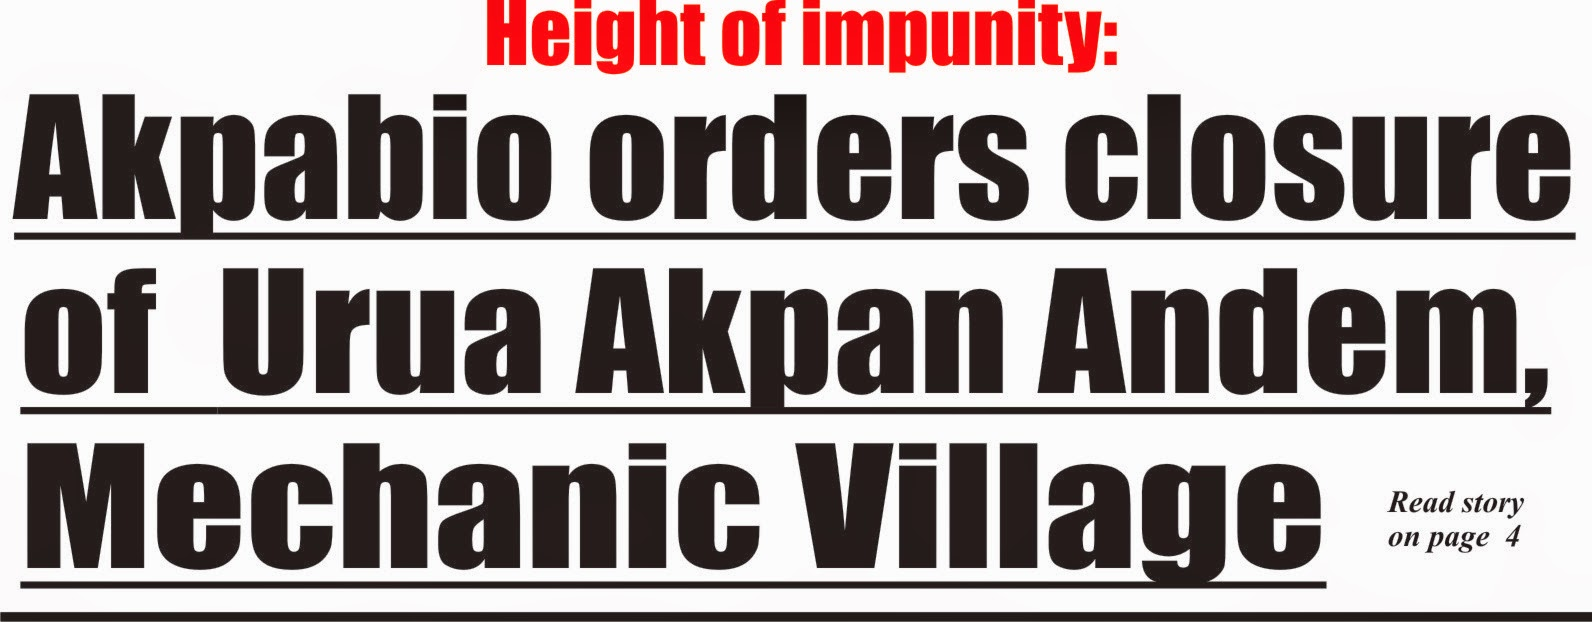 Akpabio shuts down mechanic village, Akpan-Andem market for Udom